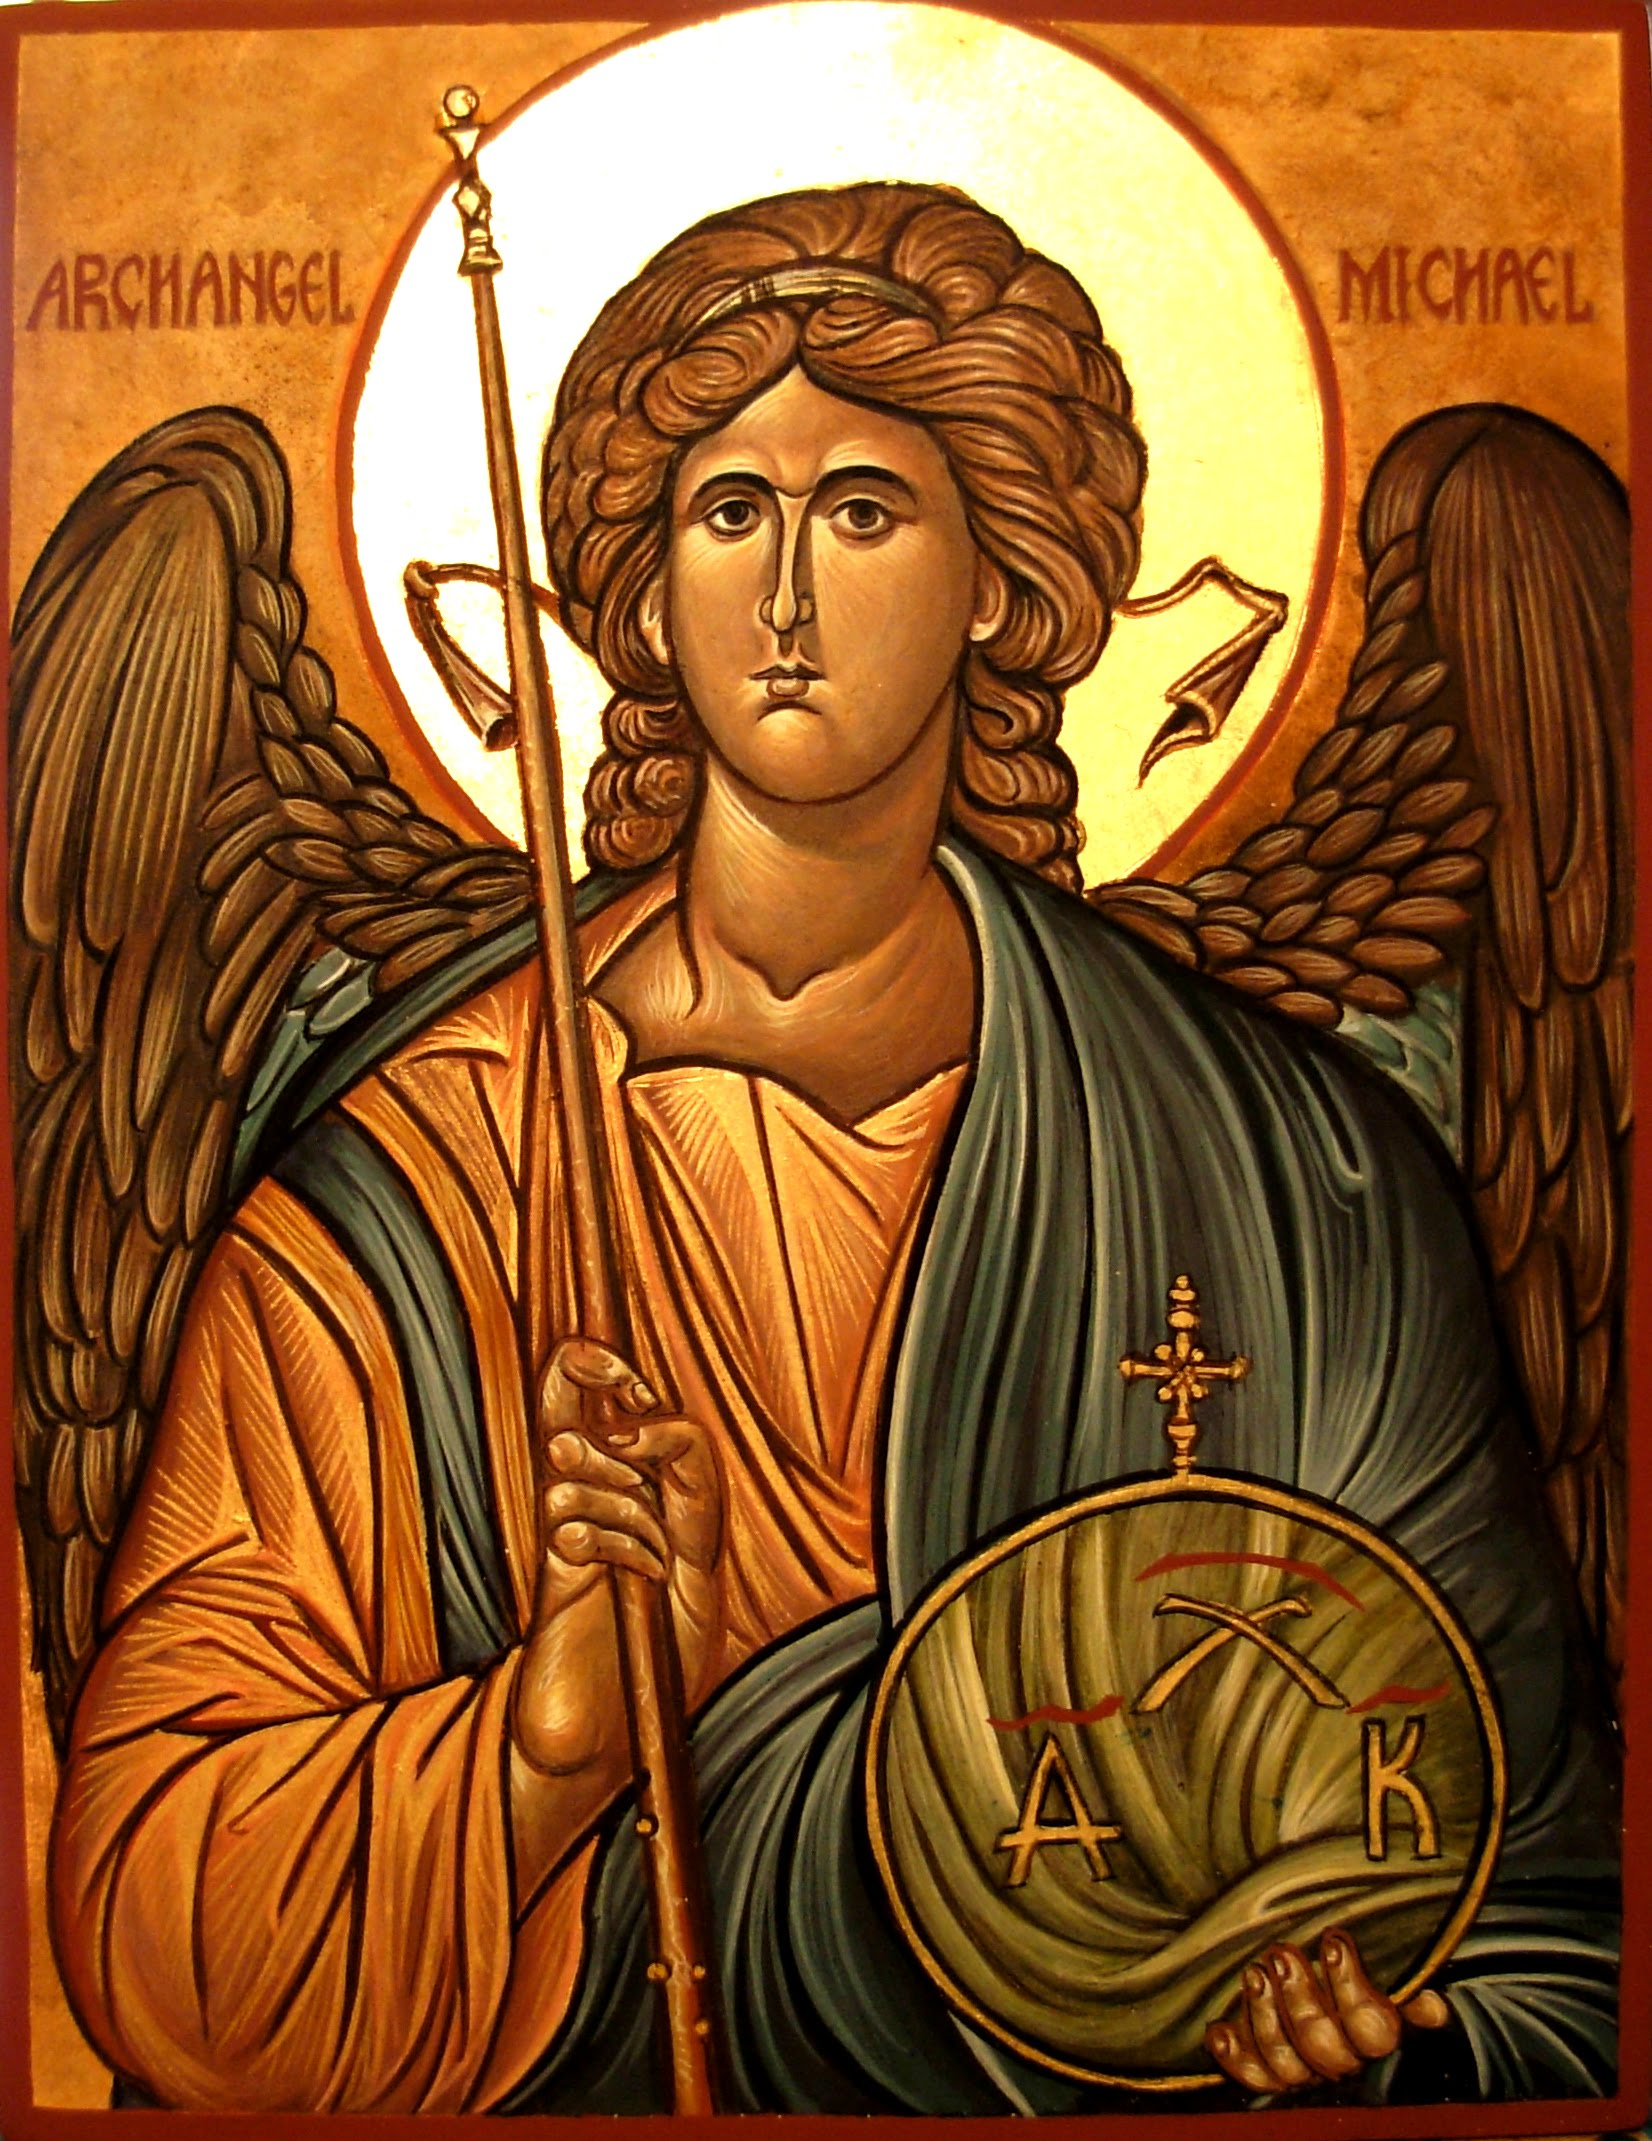 http://www.stjohnsiconstudio.com/_/rsrc/1229258170456/icons-for-sale-now/Archangel%20Michael%20final.jpg